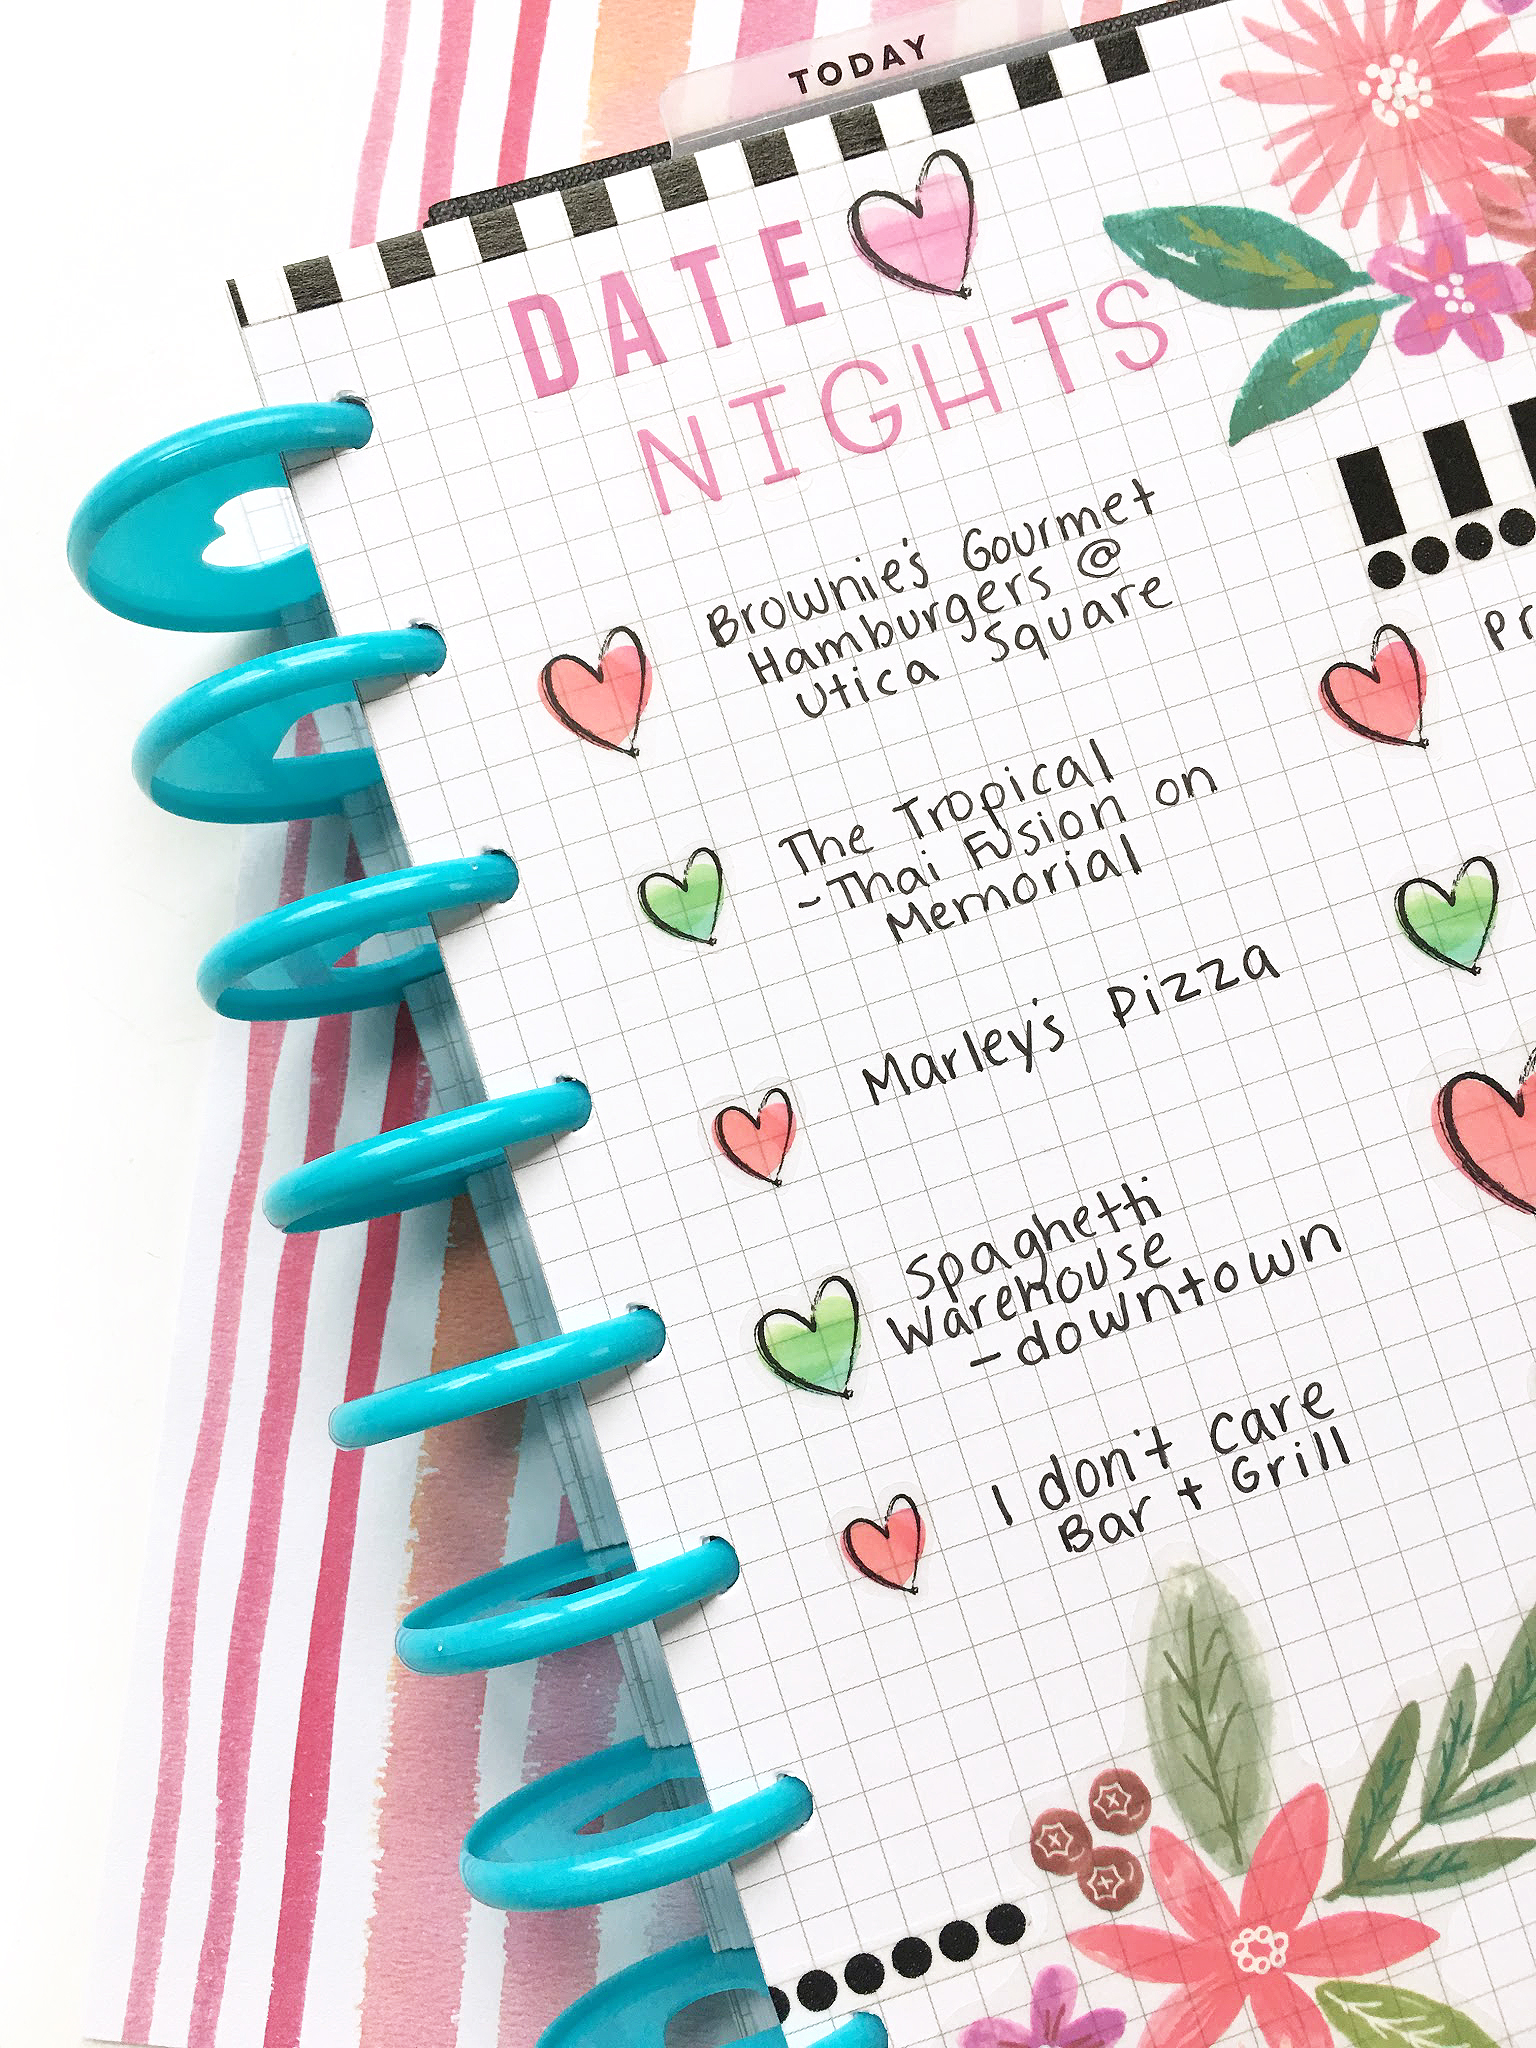 DIY 'Date Night' Bucket List page using Happy Planner grid paper by mambi Design Team member Katie Barton | me & my BIG ideas